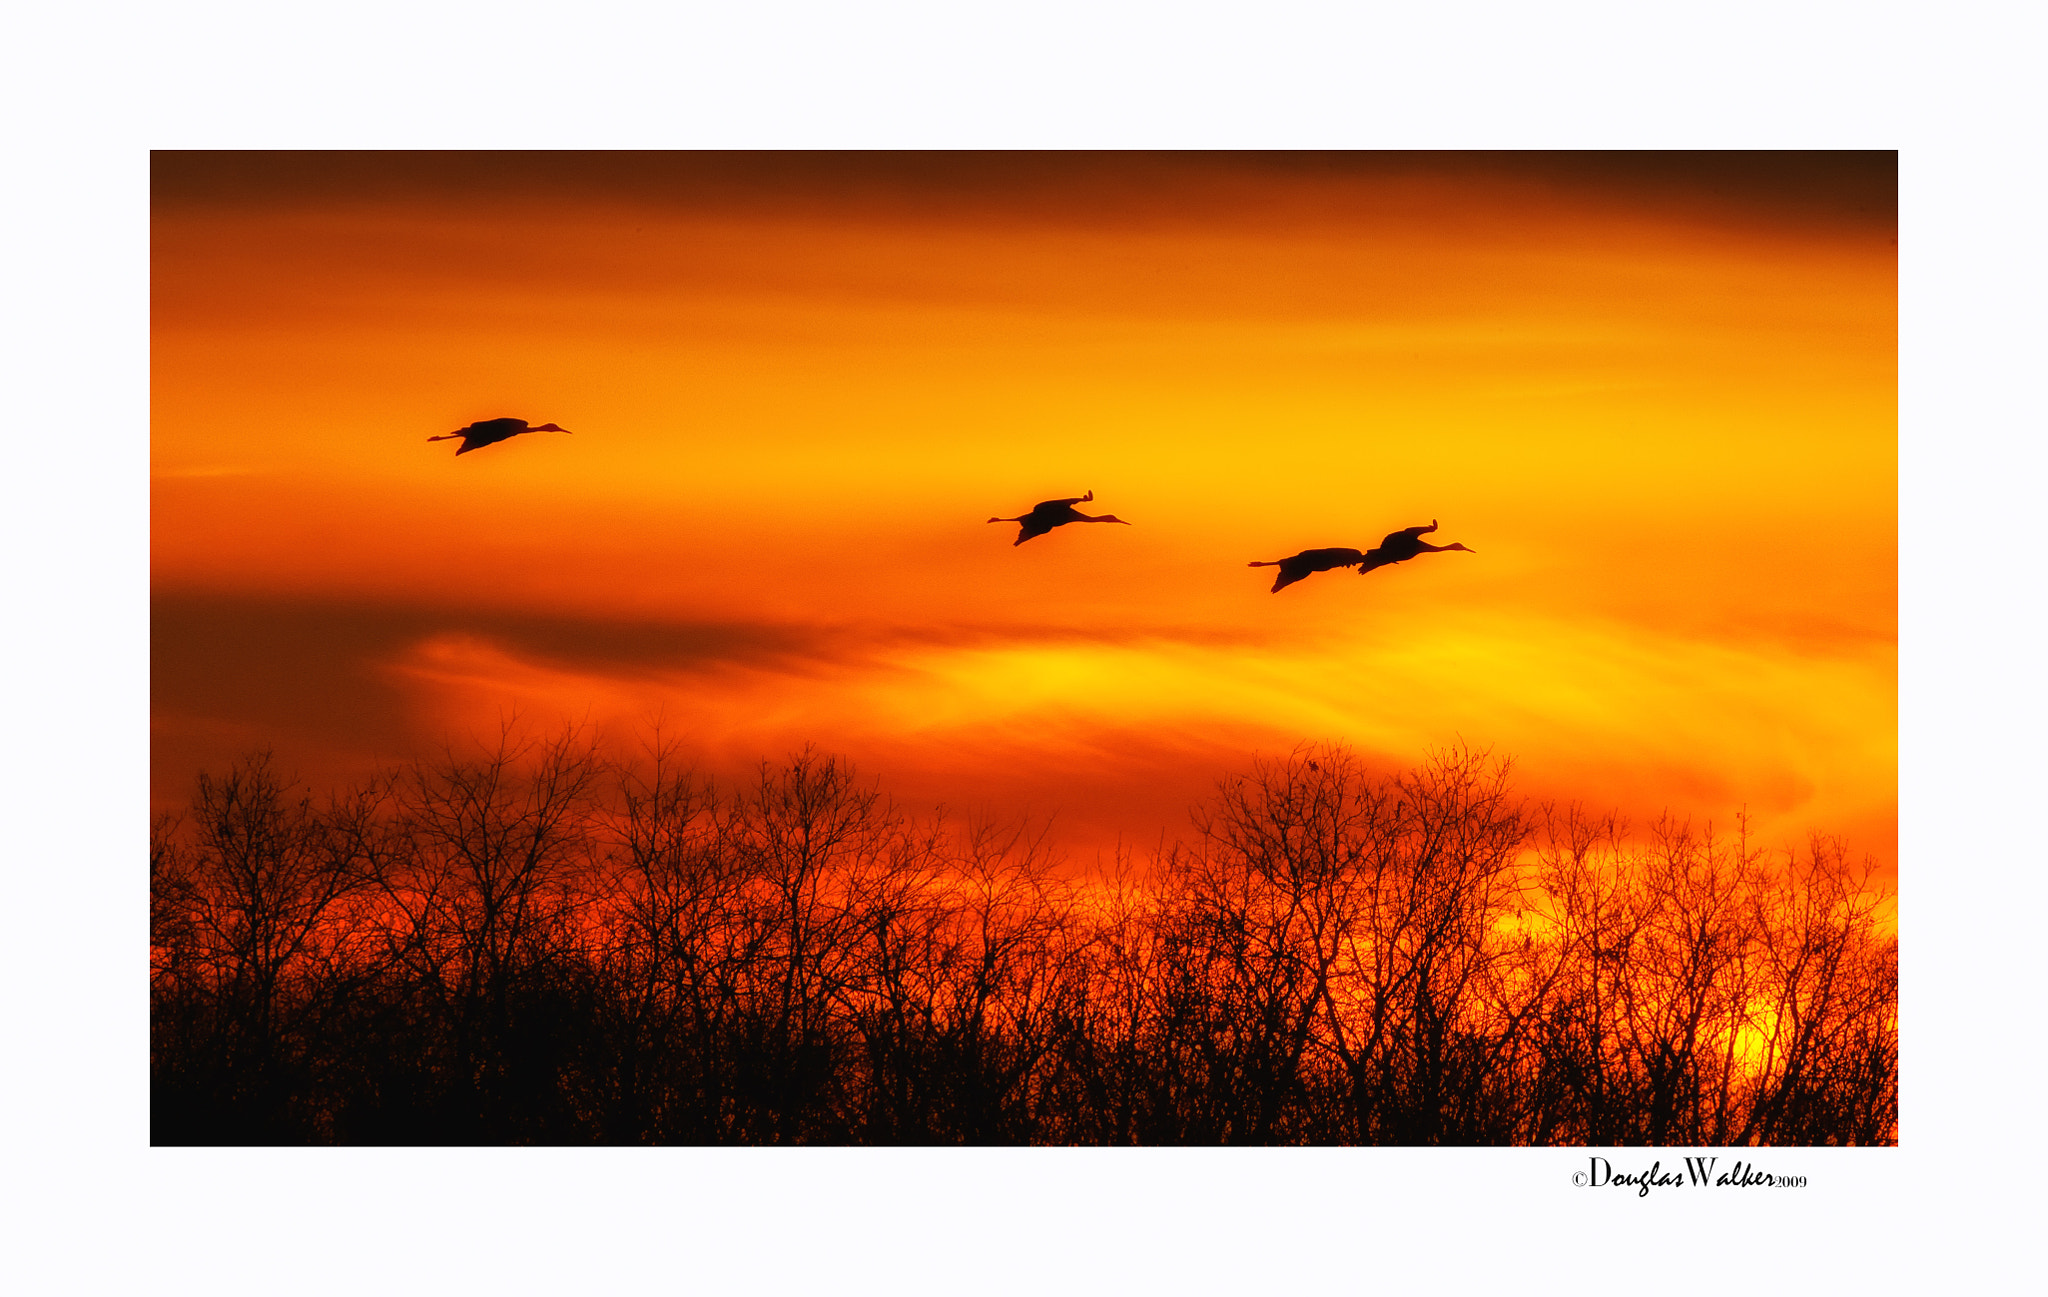 Photograph Sunset with Sandhill Cranes by Douglas Walker on 500px